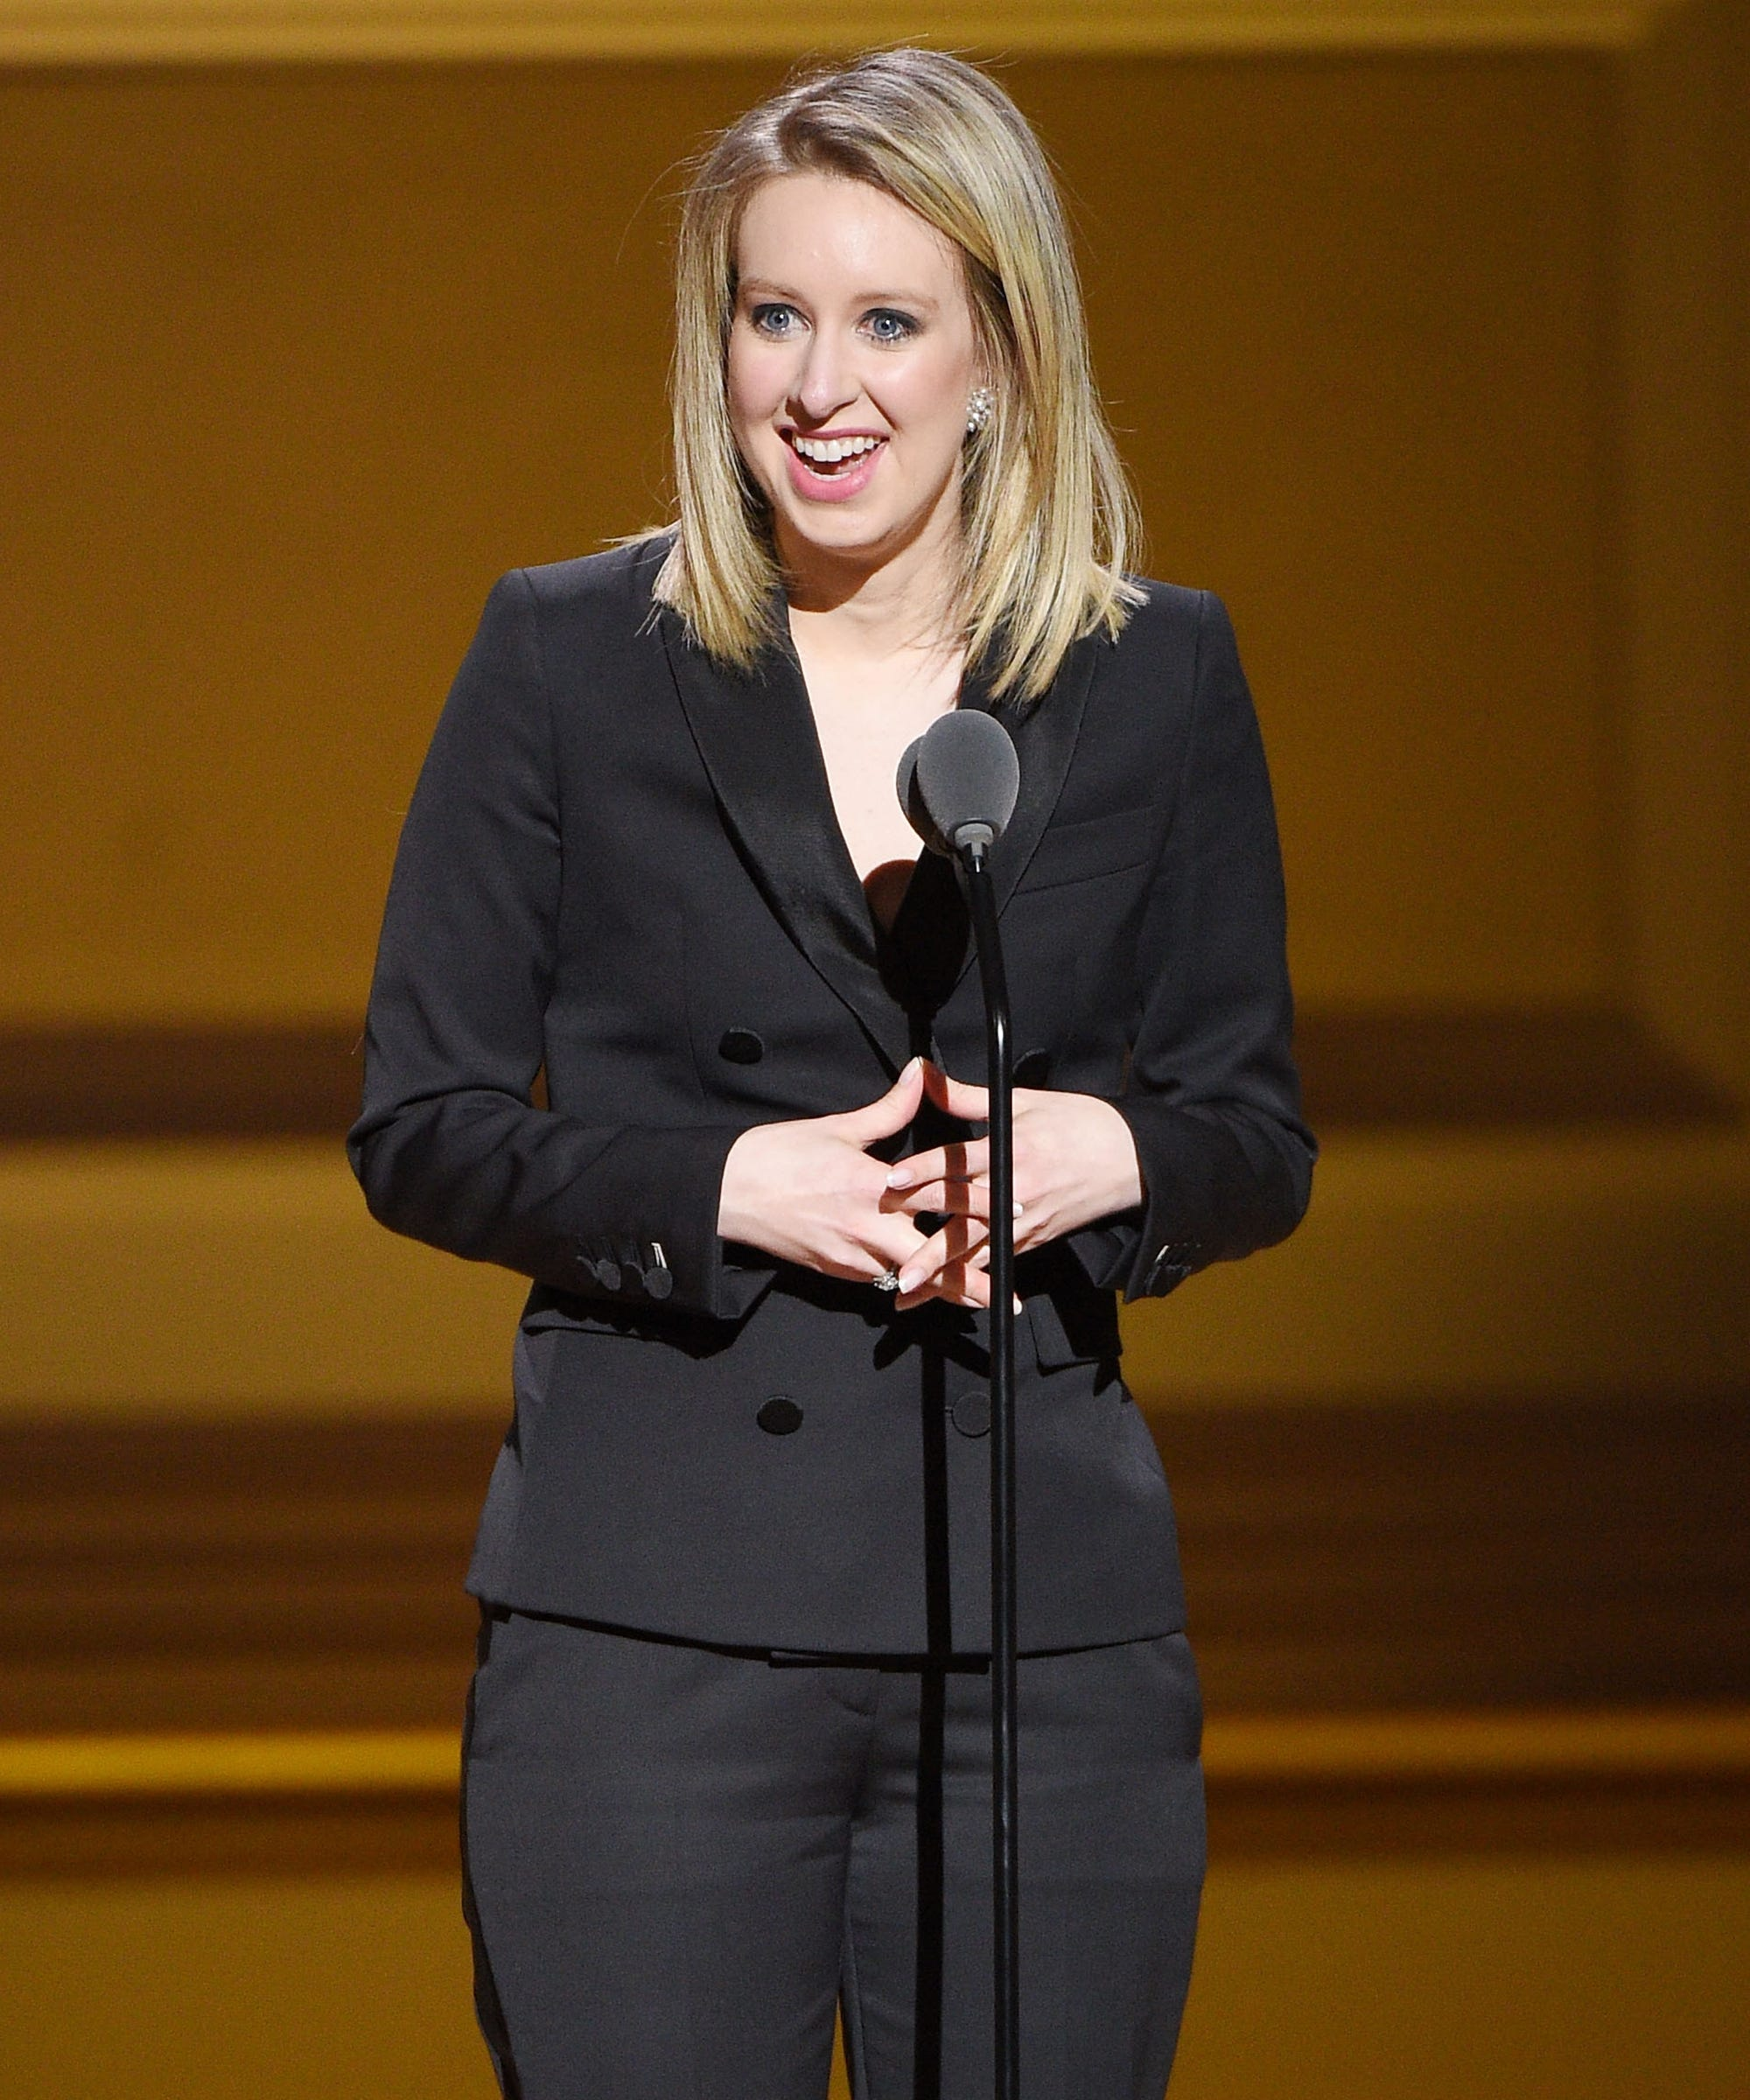 Elizabeth Holmes' Quotes Once Inspired — Now, They're Shocking